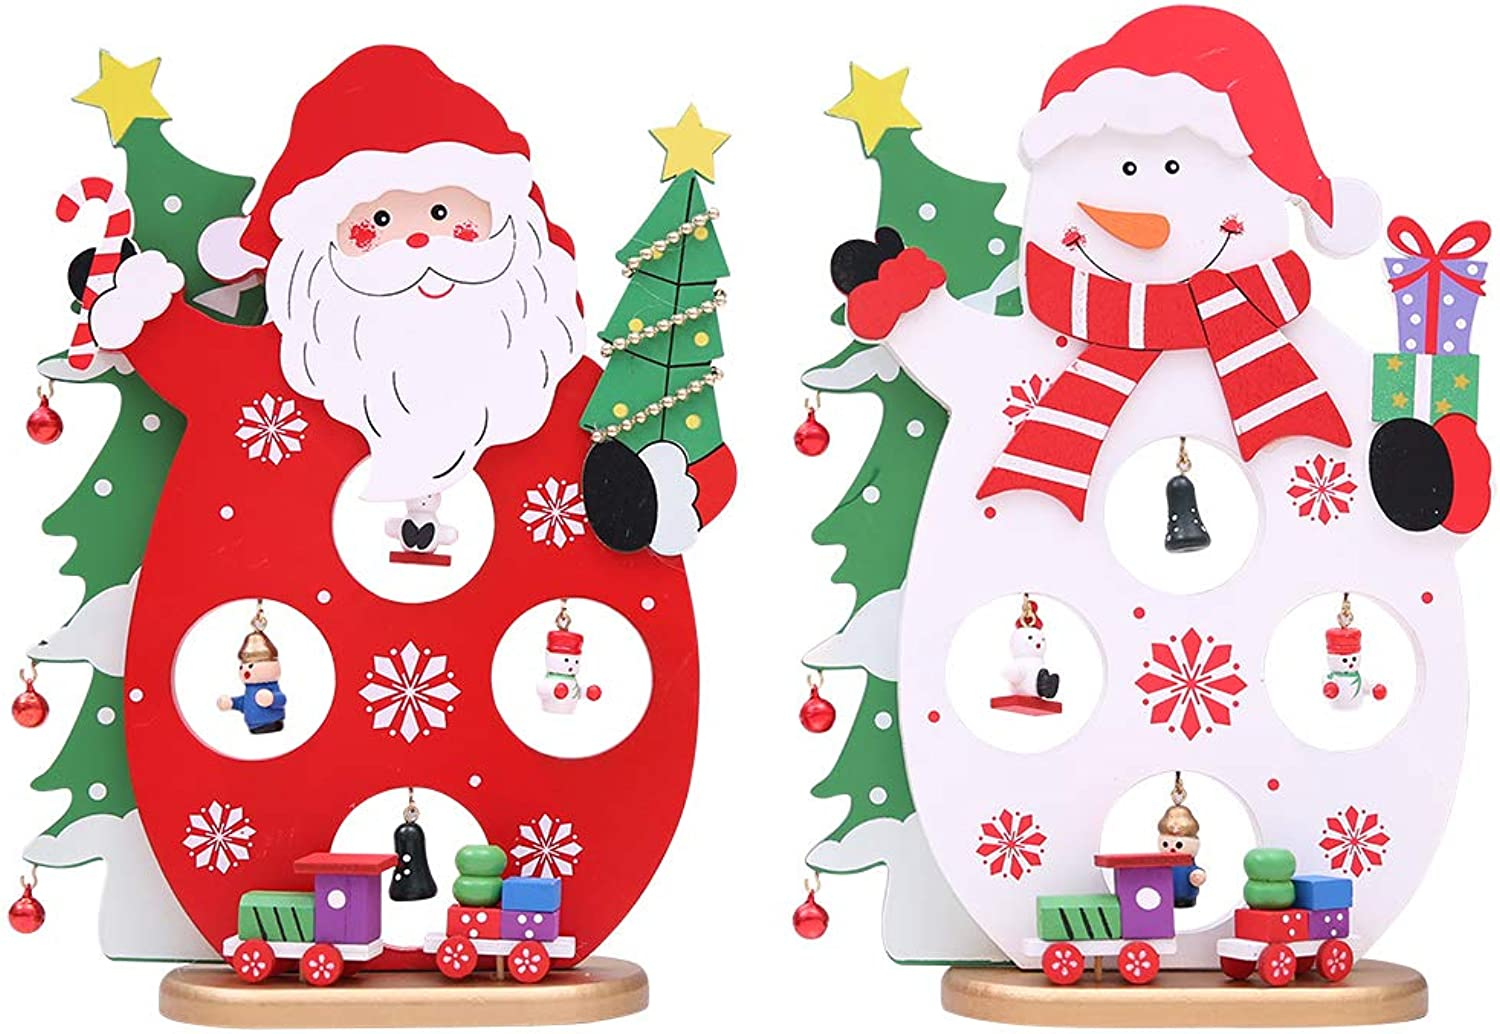 Christmas Decorations Christmas Wooden Three-Dimensional Decoration Cartoon Old Man Snowman Desktop Device Arrangement DIY 17  24Cm 2Pcs